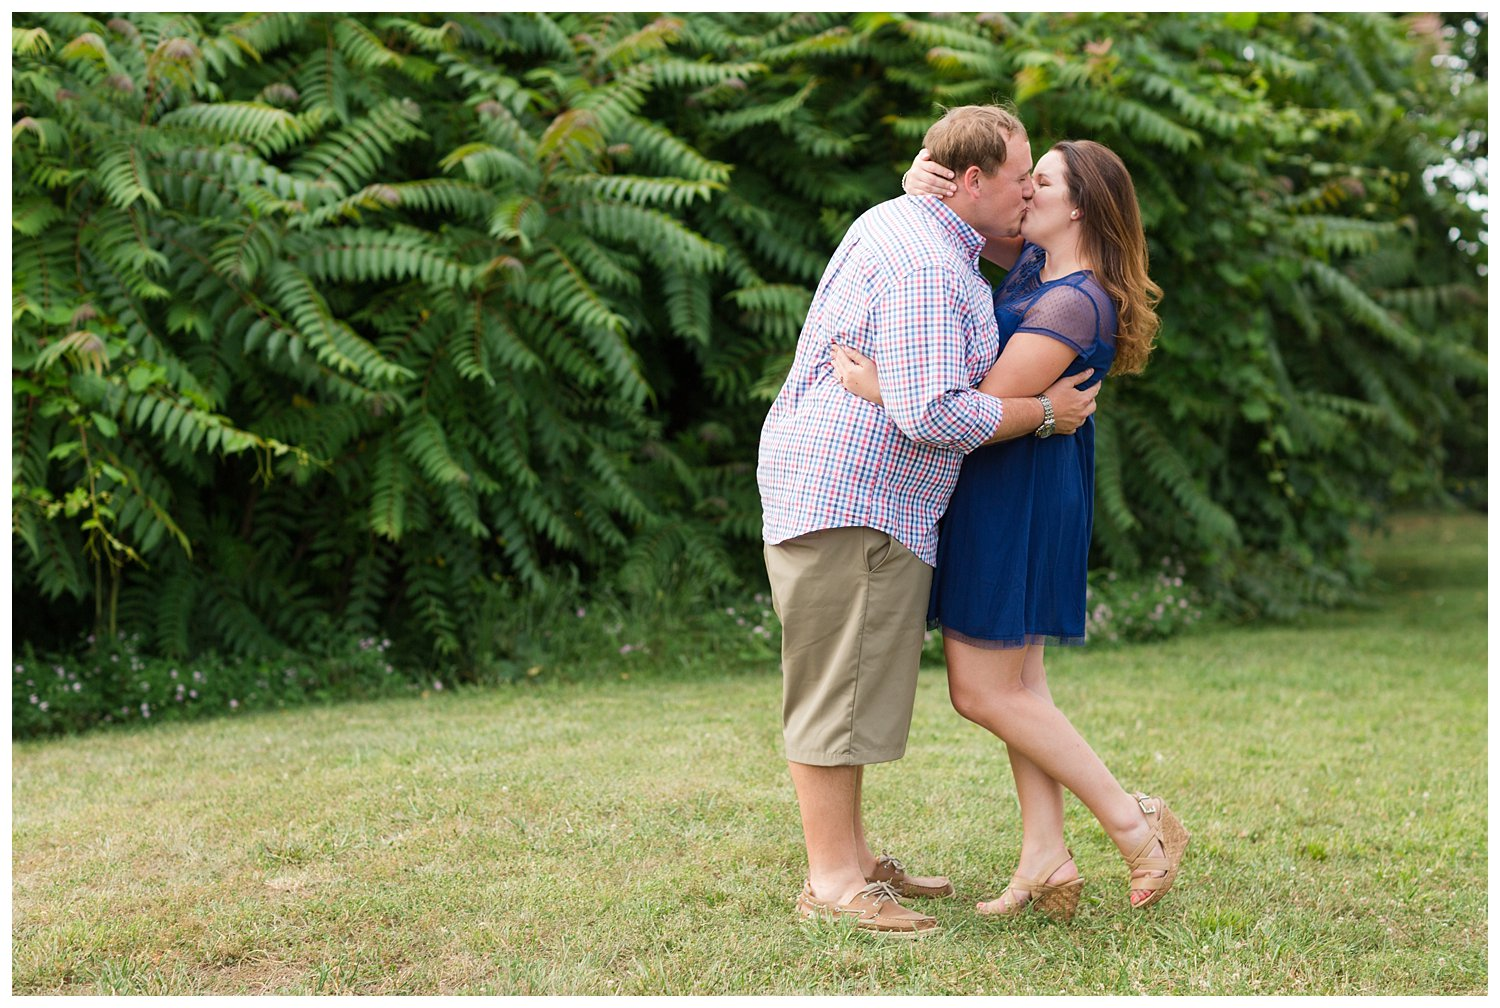 elovephotos old town alexandria engagement session_0792.jpg